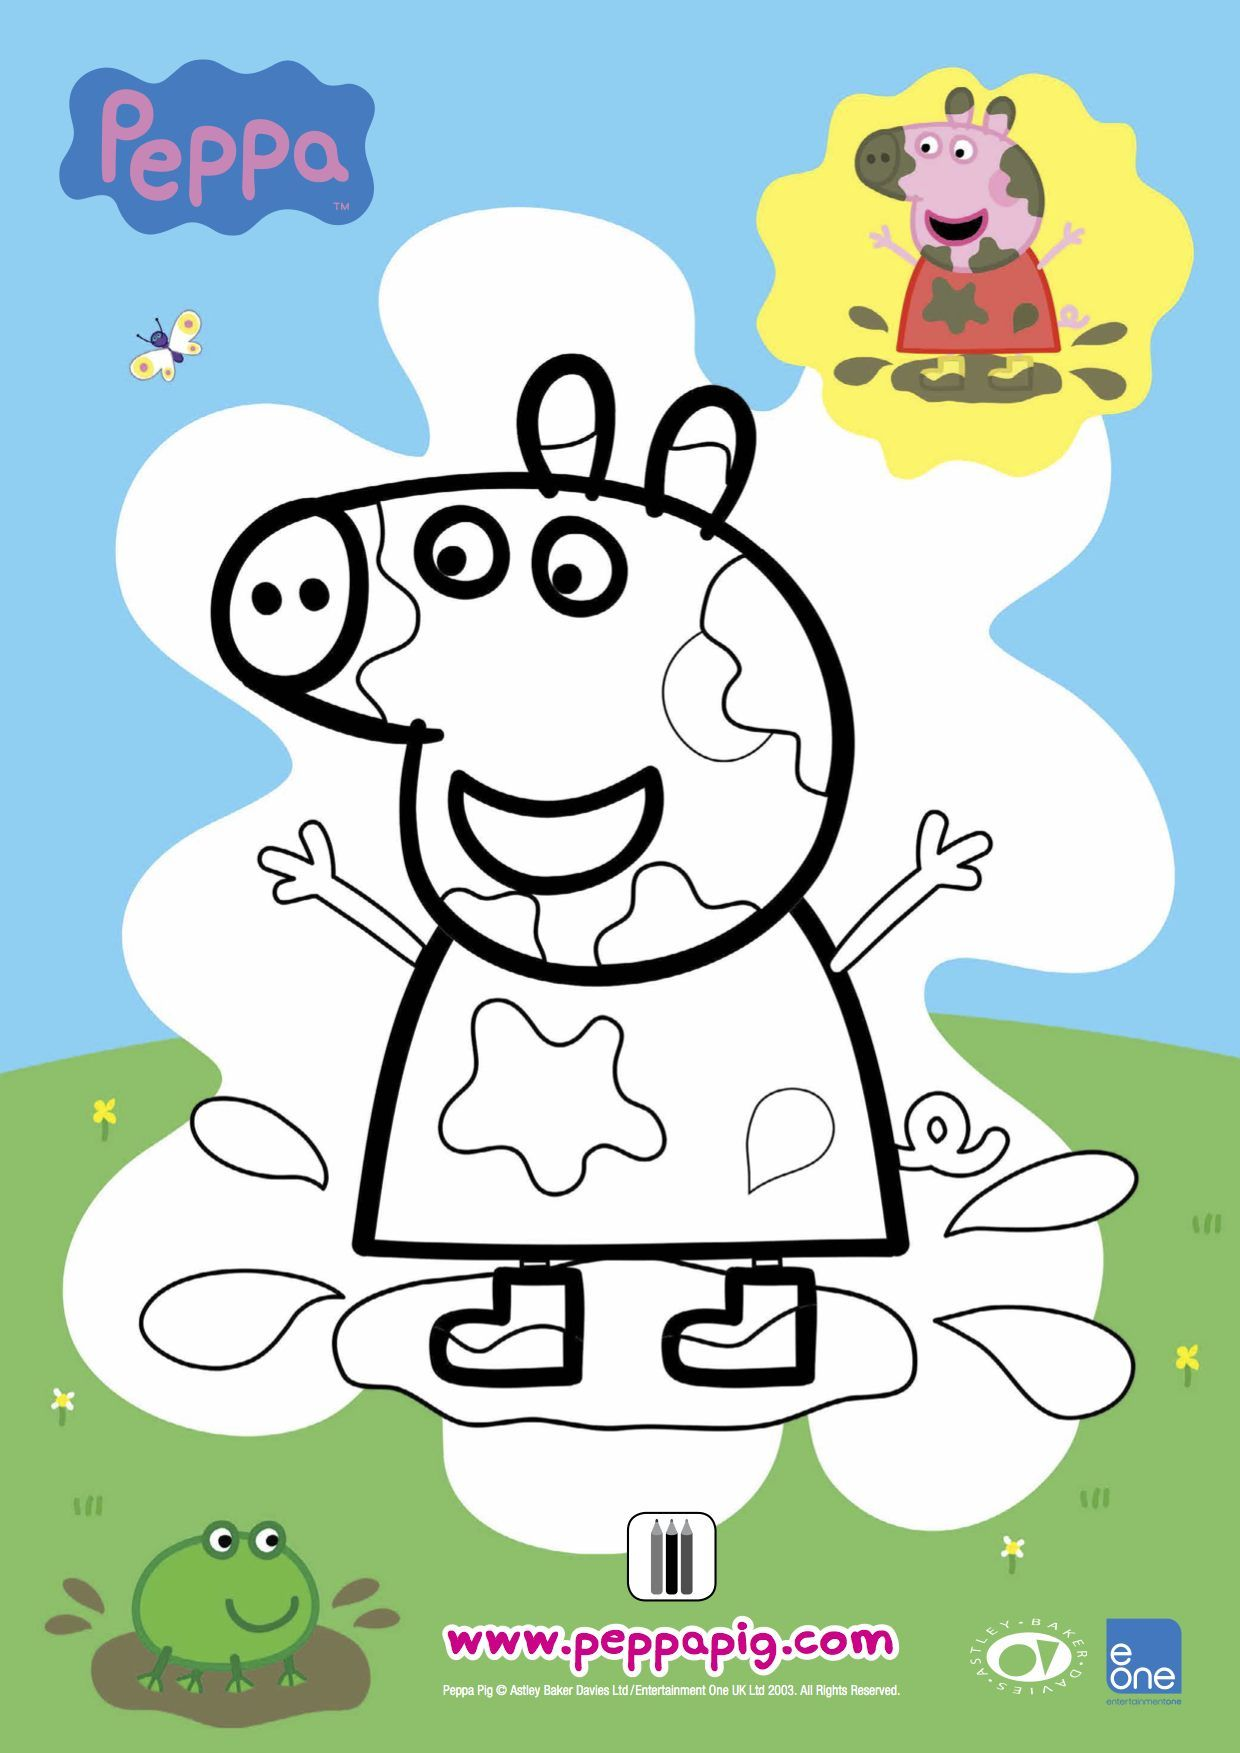 Rainy Day Activities Download These Free Peppa Pig Activity Sheets Mumslounge Peppa Pig Coloring Pages Peppa Pig Peppa Pig Printables [ 1753 x 1240 Pixel ]